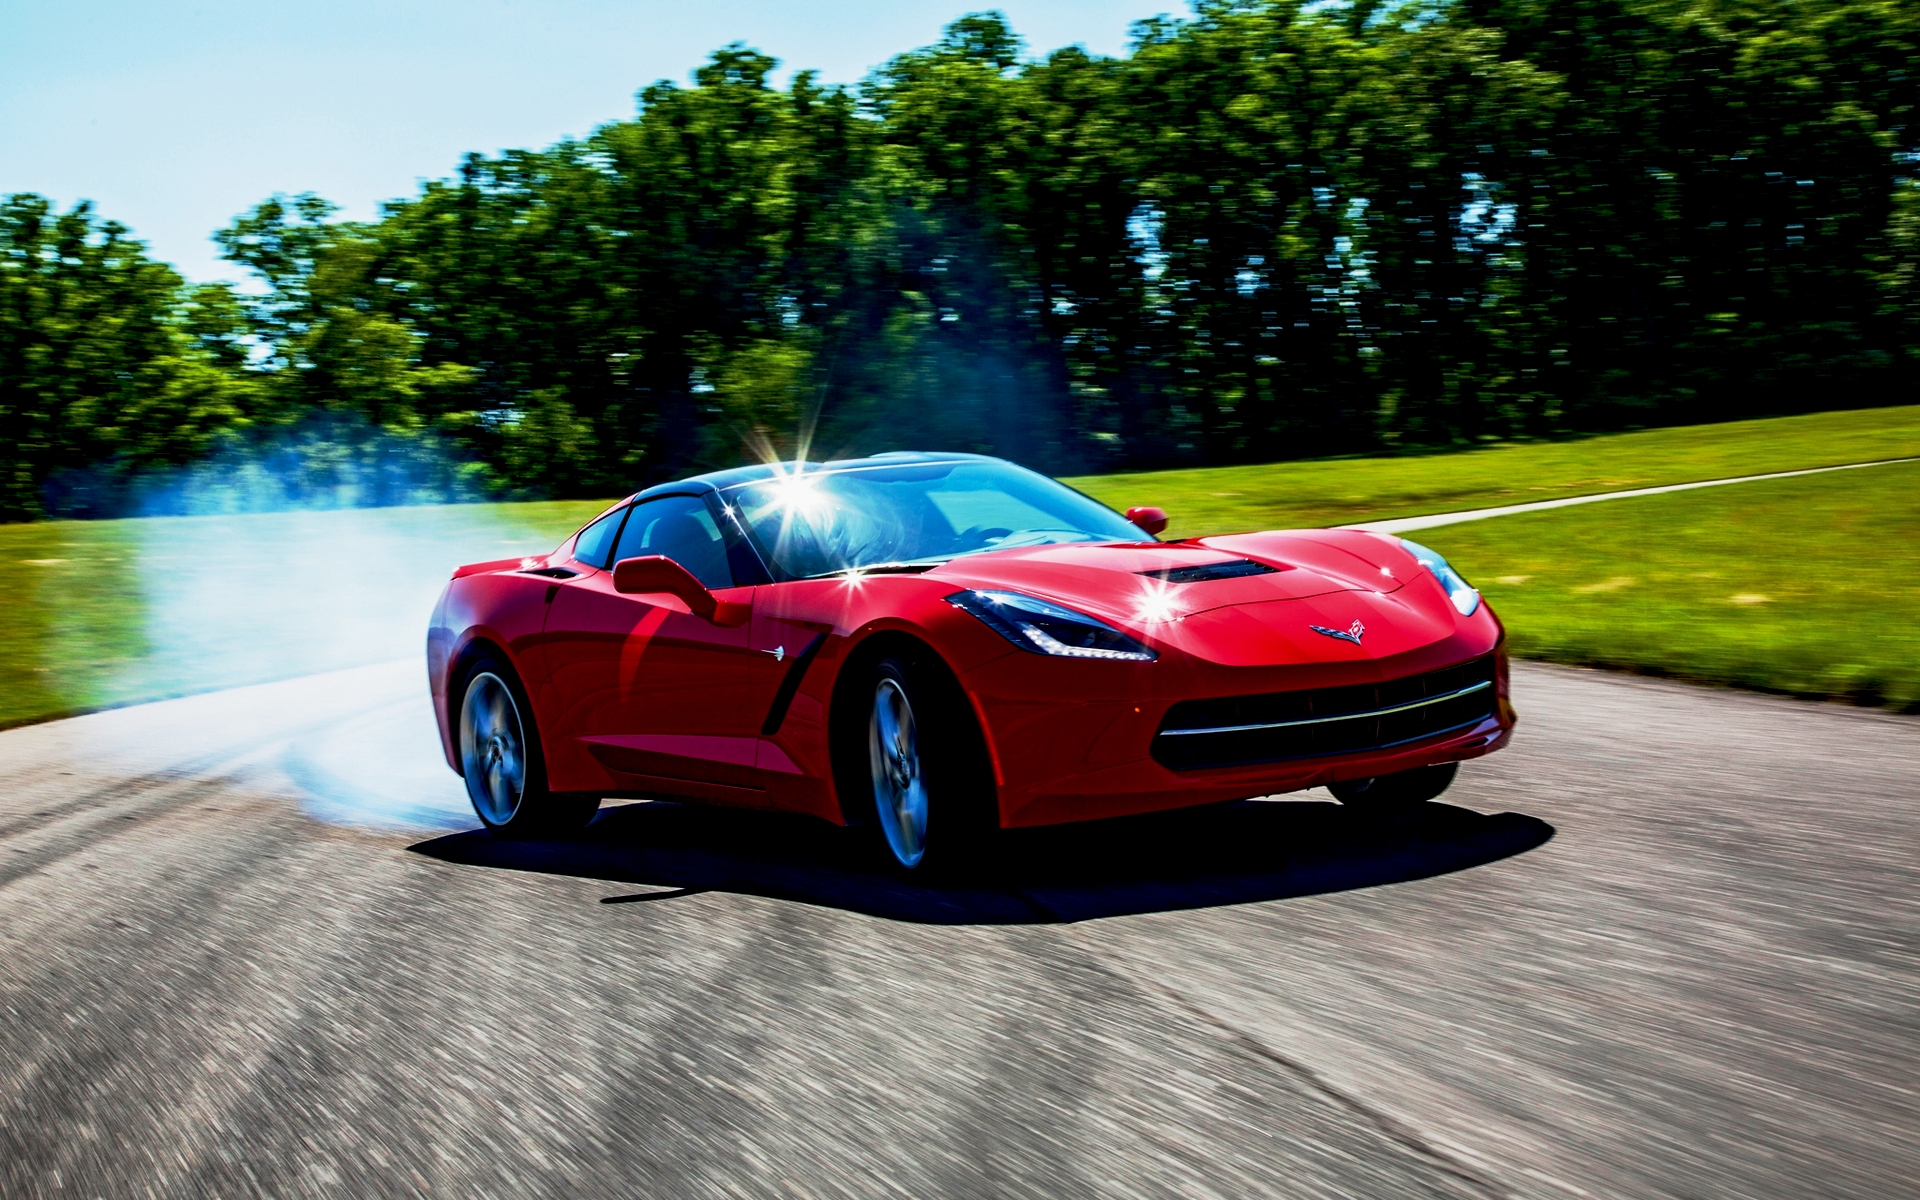 2014 Chevrolet Corvette Stingray Z51 Wallpaper 1920x1200